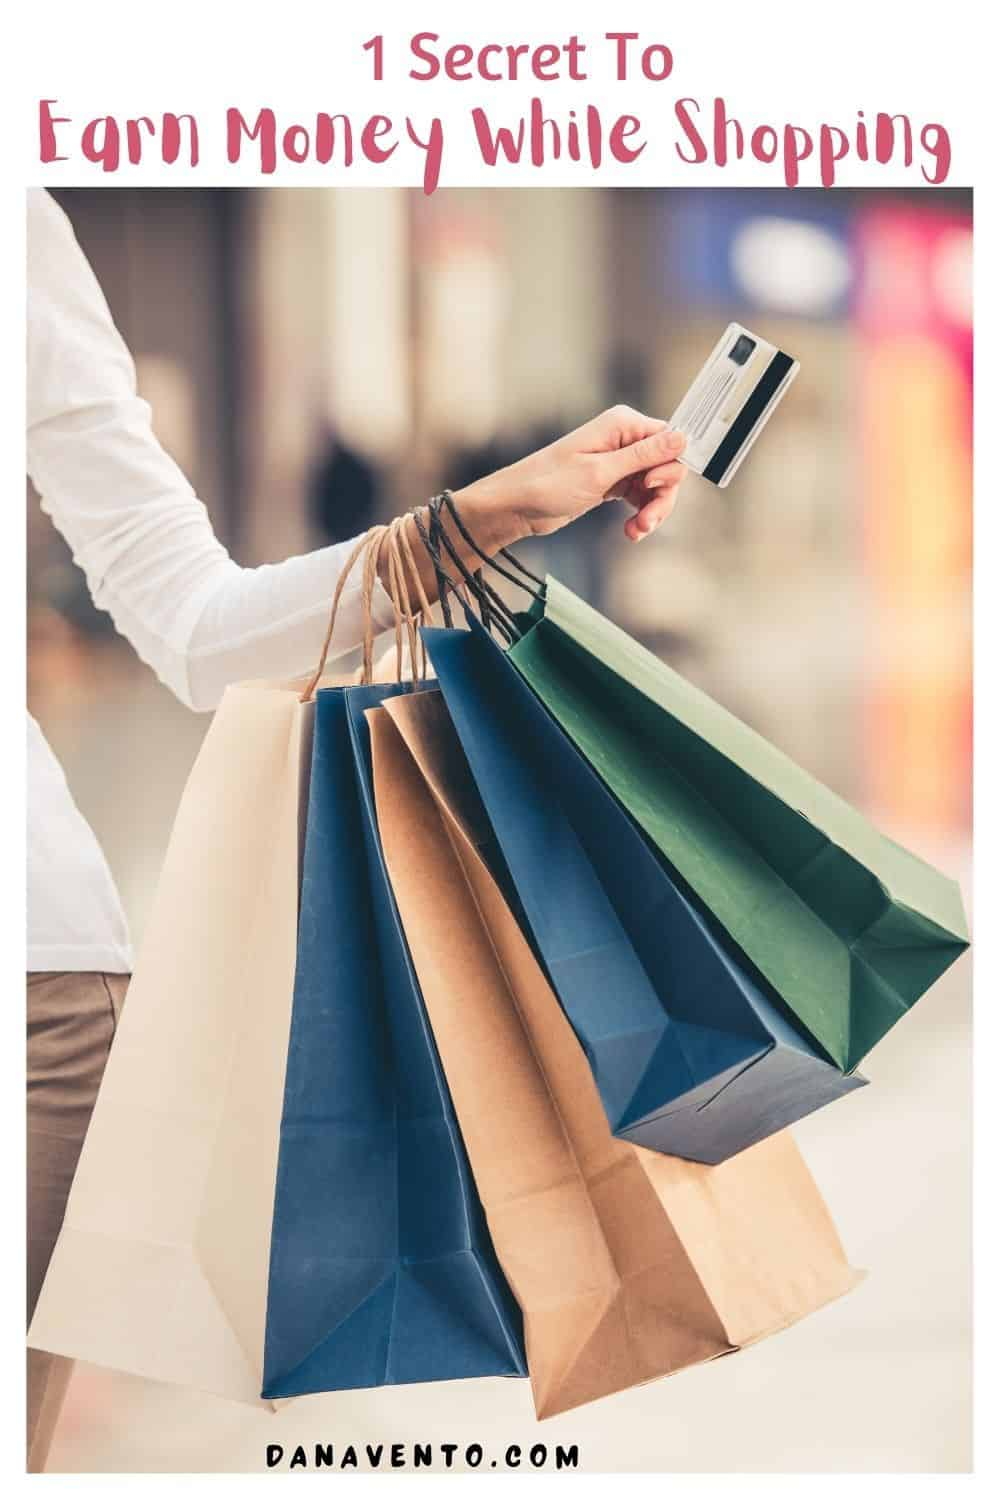 1 secret to earn money while shopping